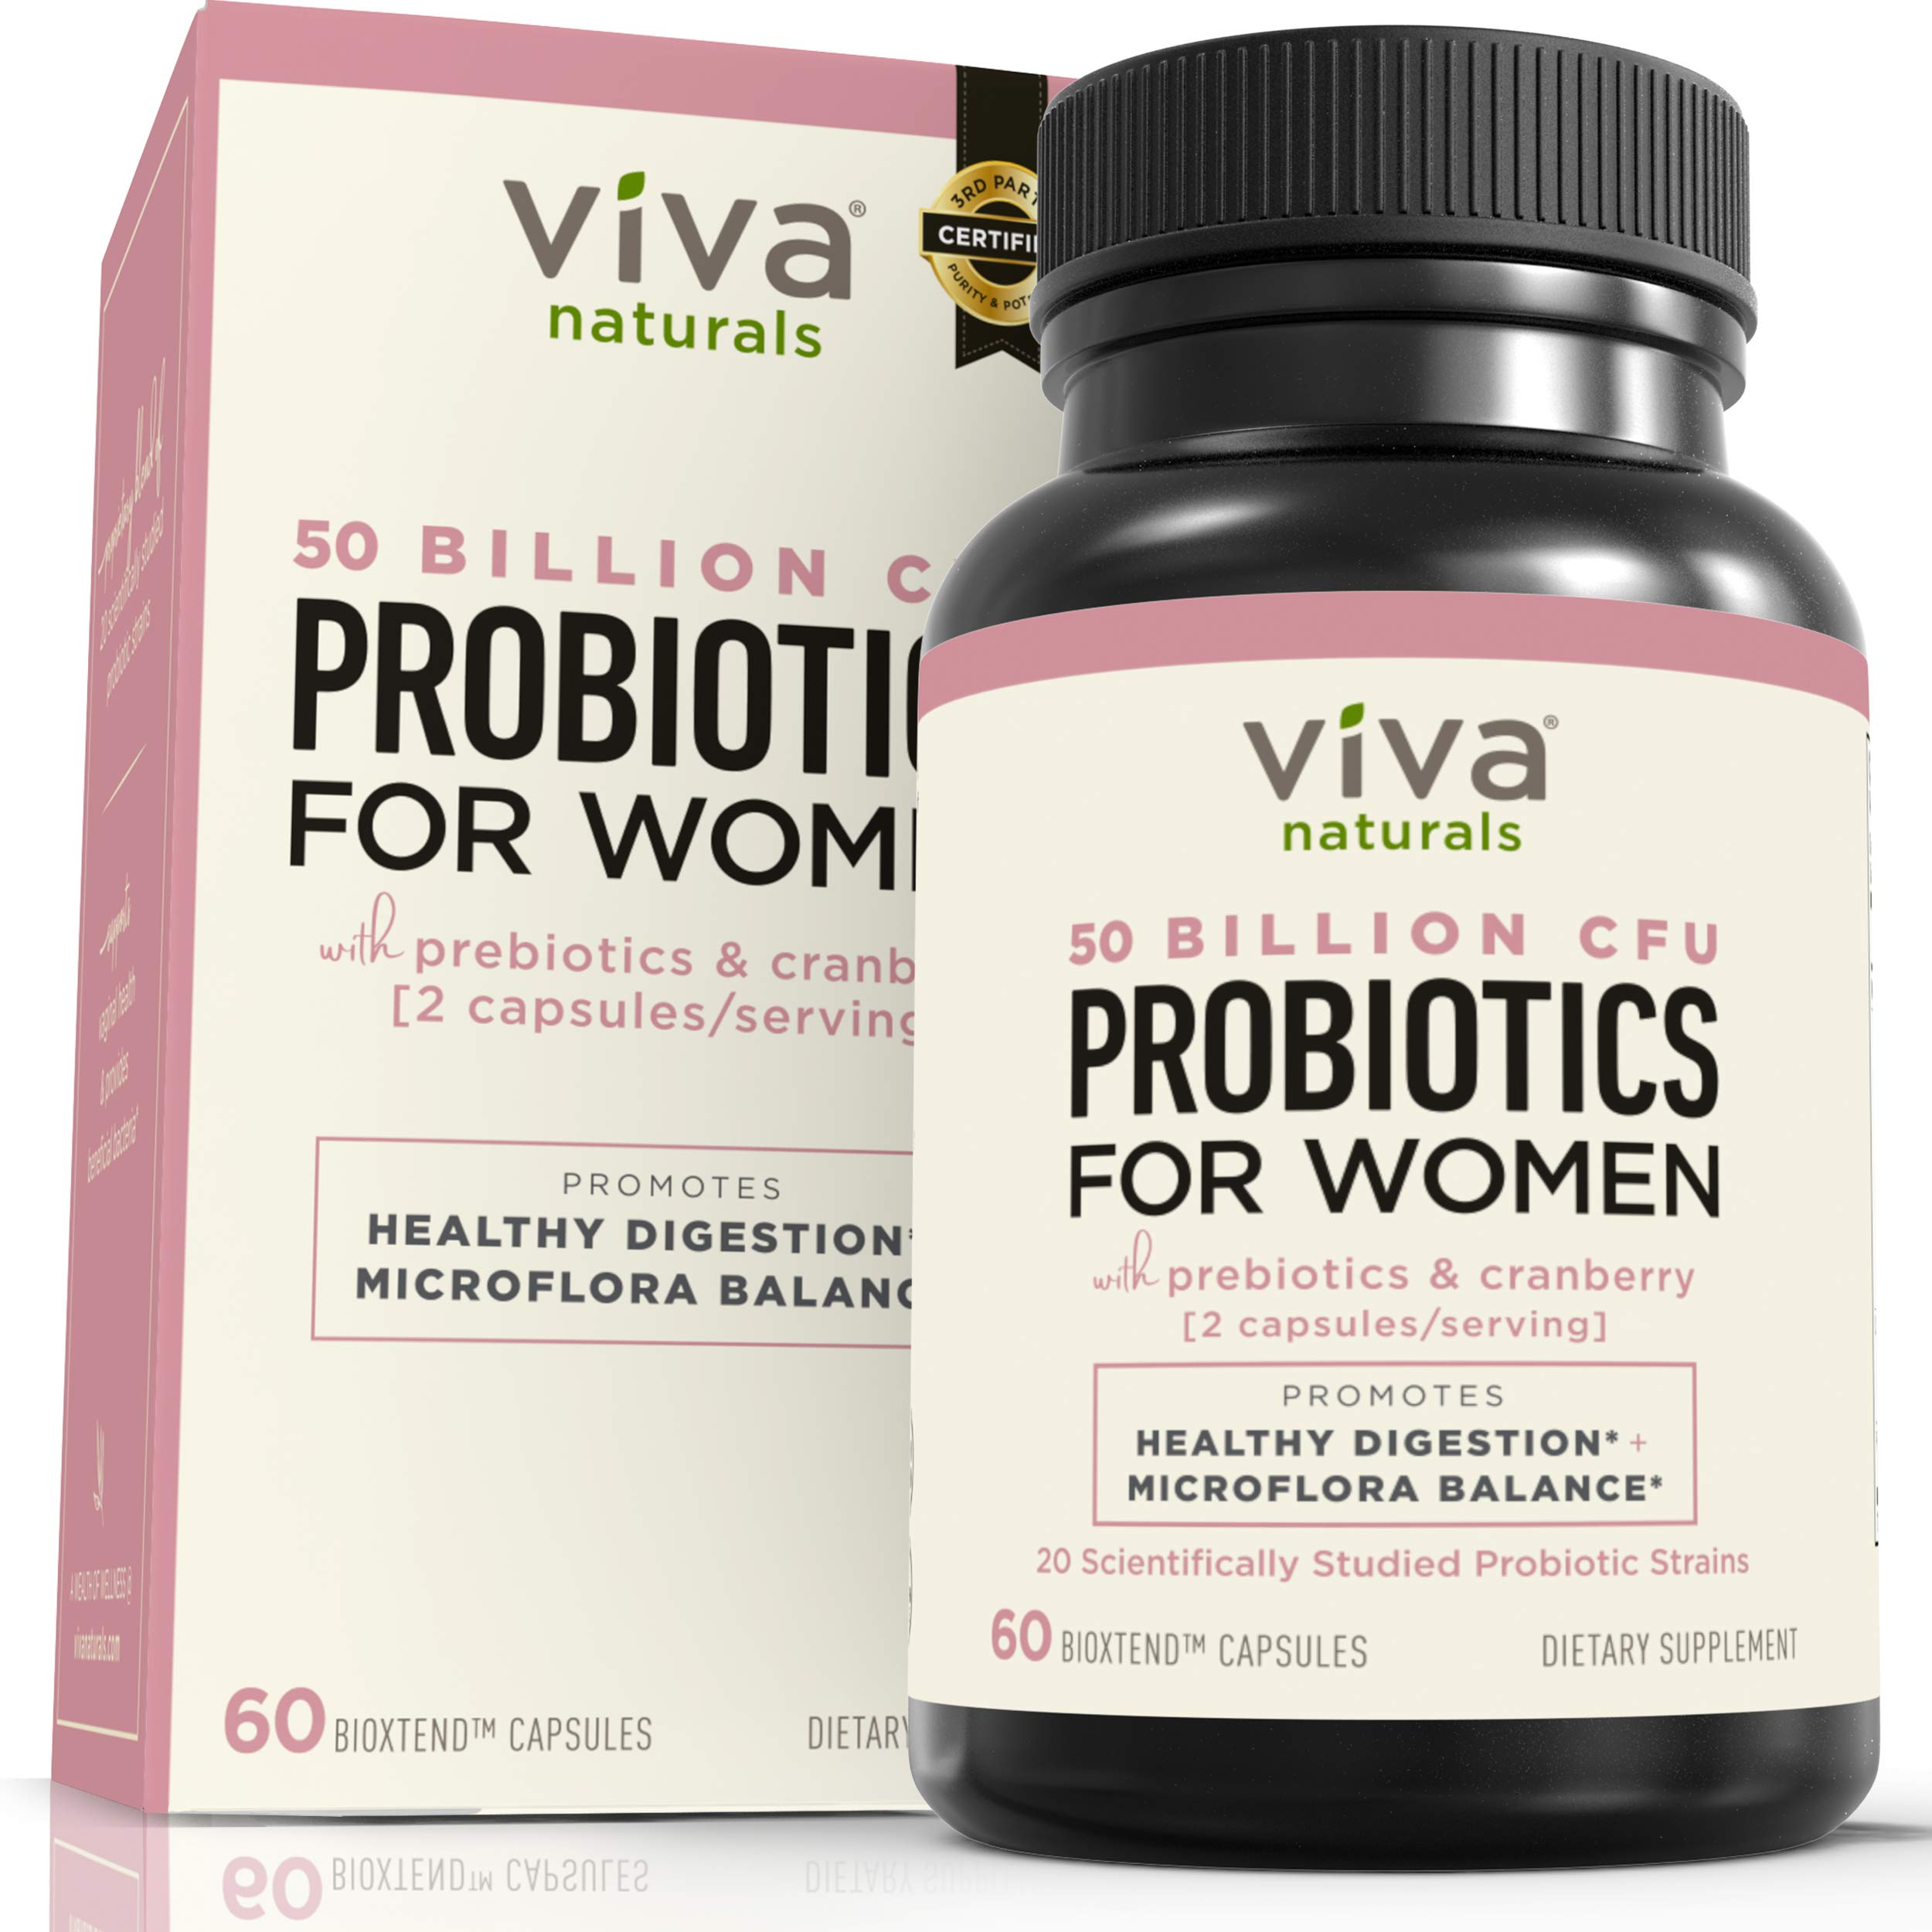 Probiotics for Women with 50 Billion CFU + 20 Strains, Complete Shelf-Stable Womens Probiotic Supplement with Prebiotic and Cranberry to Support Stomach, Digestive System & Vaginal Health, 60 Capsules by Viva Naturals